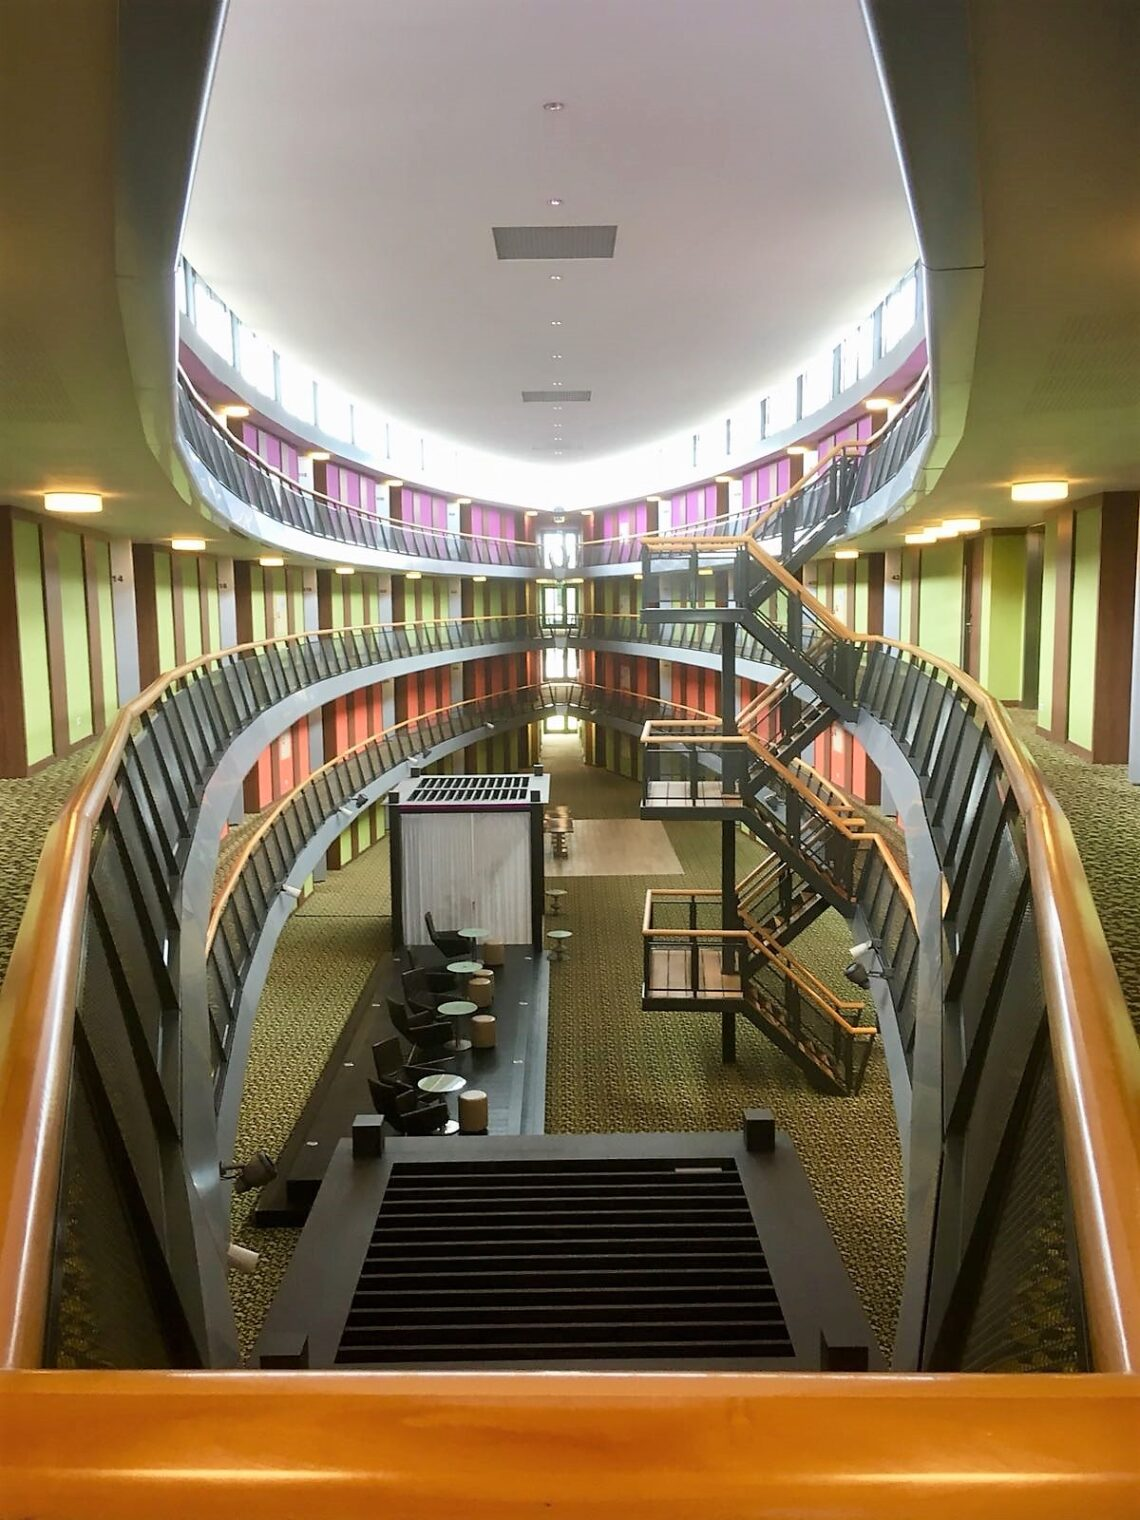 The Atrium, 4 floors, with different colored doors. In the middle open space, down chairs with coffee tables and closed off cubes.